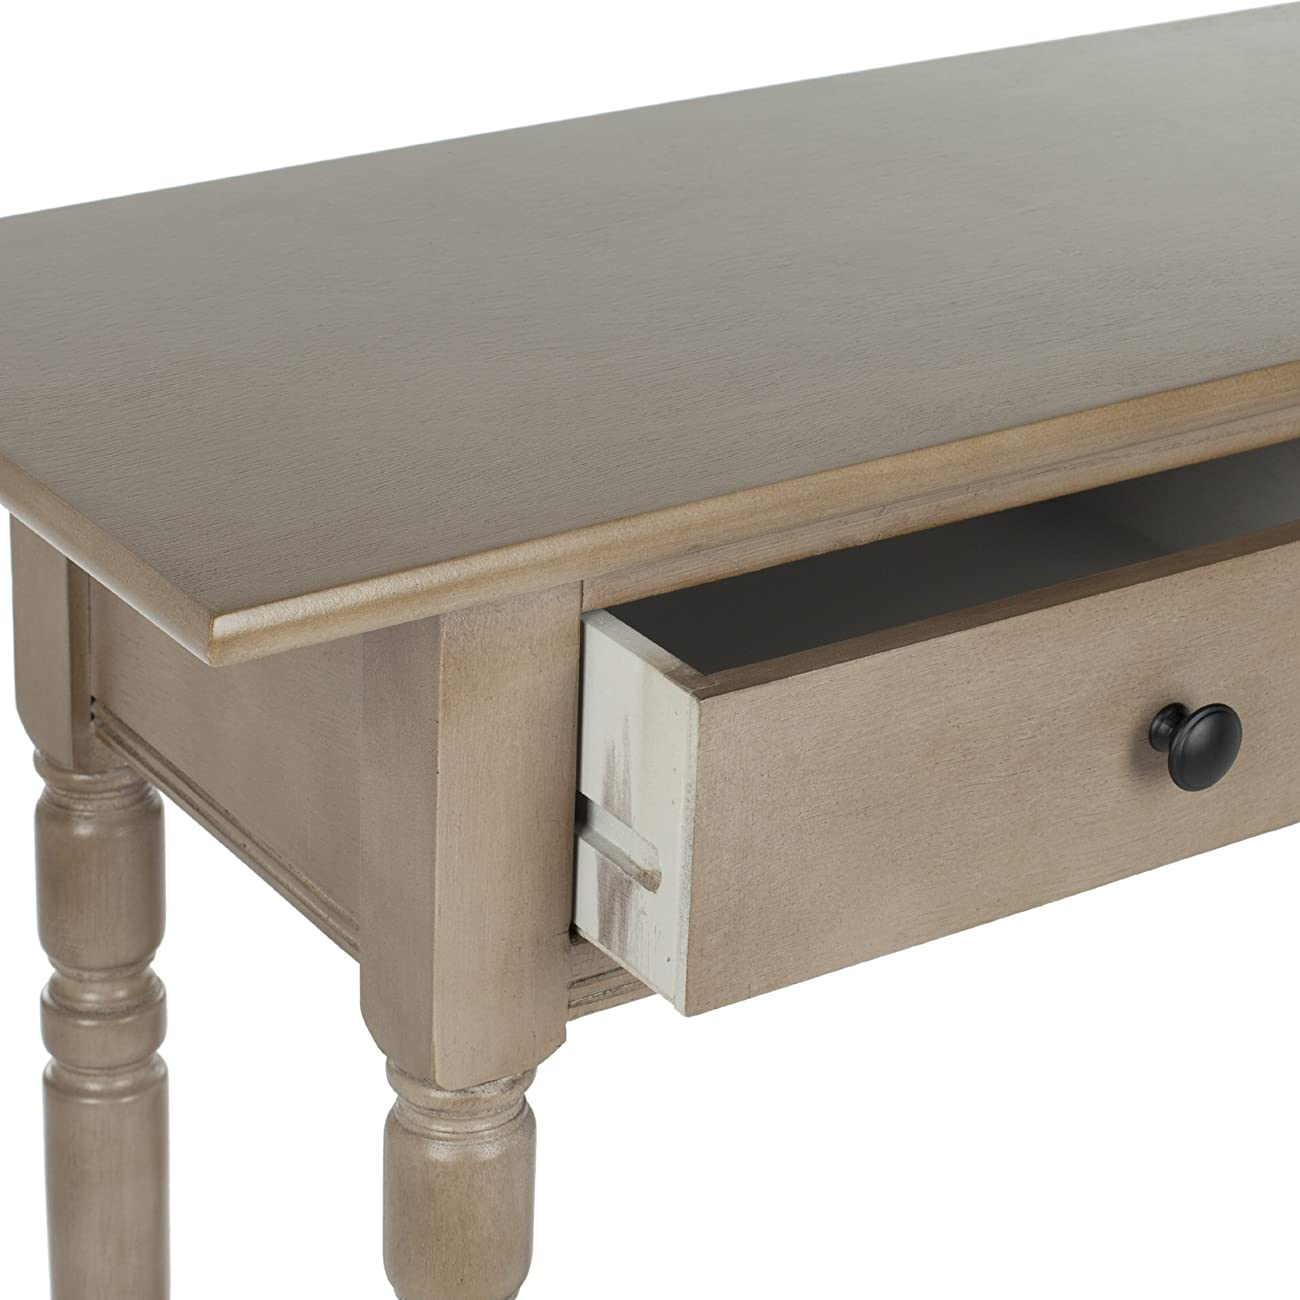 Safavieh American Home Collection Dover Console Table, Vintage Grey 1